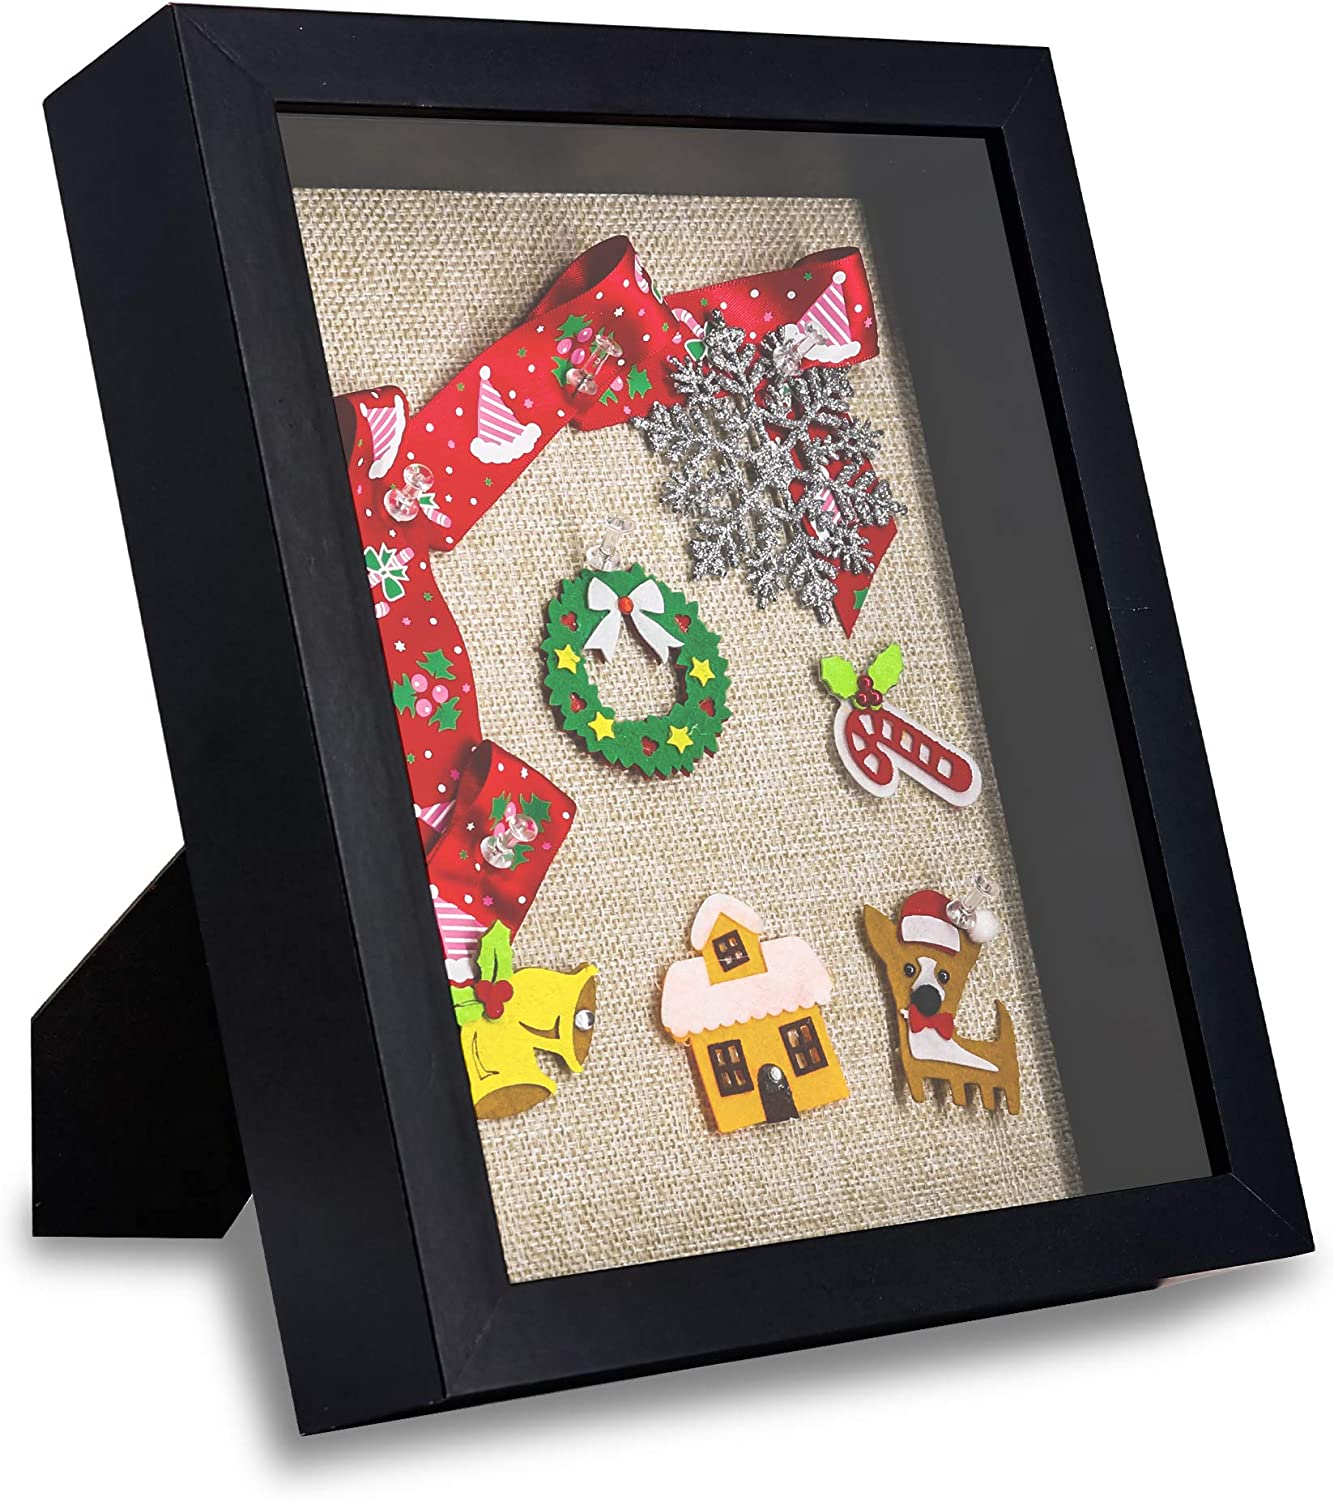 GraduatePro Shadow Box Frame 8x10 Display Case Black with Linen Background and 6 Stick Pins Memorabilia Awards Medals Photos Memory Box